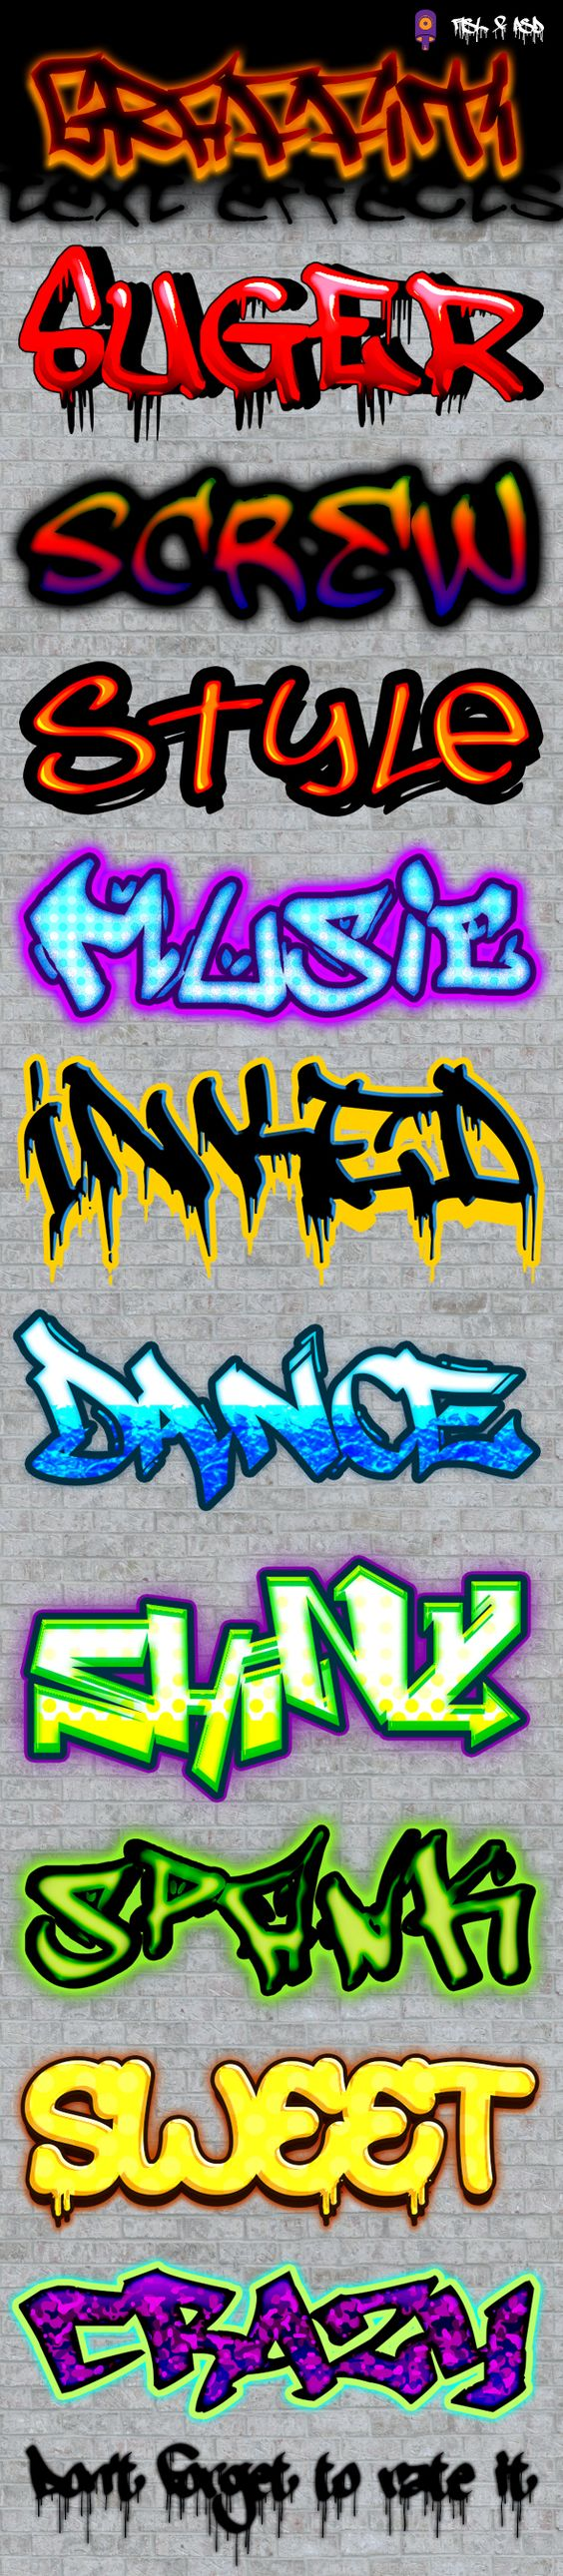 Graffiti Text Effects - Text Effects Styles